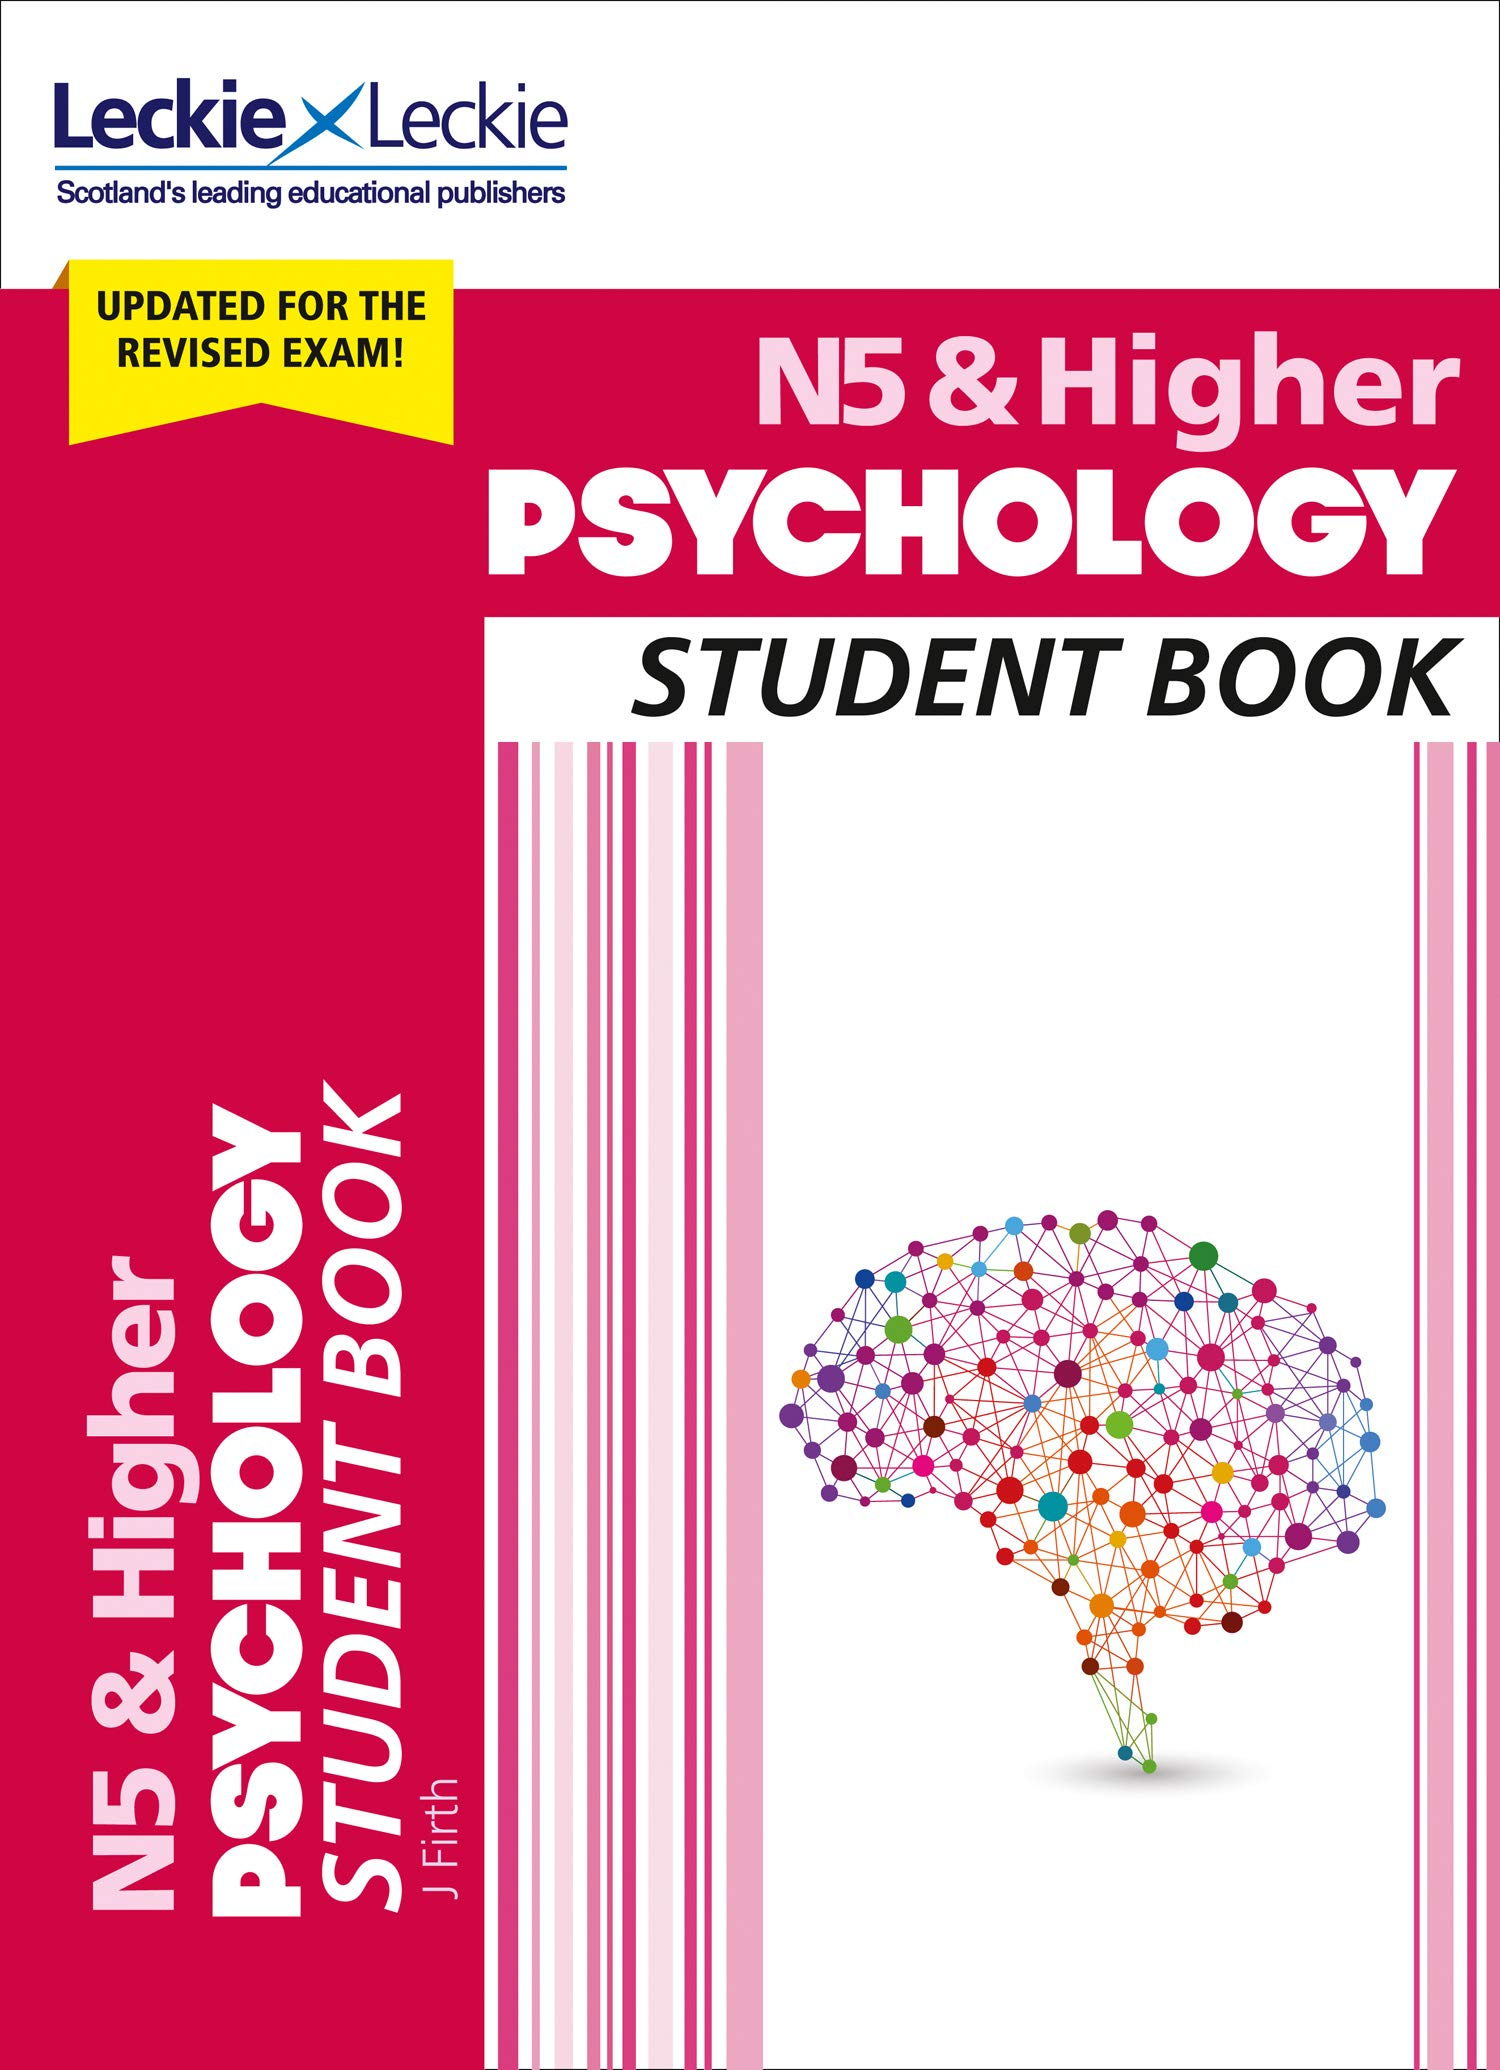 N5 & Higher Psychology Student Book - This textbook is aimed at all students studying either N5 or Higher Psychology, and is also suitable for those who do both courses consecutively.It all option topics for Higher and the most popular choices for N5, and is packed with review questions and activities. The clear structure helps learners to see how topics are organised, and a detailed introduction chapter shows the links to different perspectives/approaches to Psychology.There is also a chapter on study skills, and a chapter on the Assignment with examples for both Higher and N5. The second edition of the book came out in February 2019, so make sure you have the most up-to-date version. Buy here.